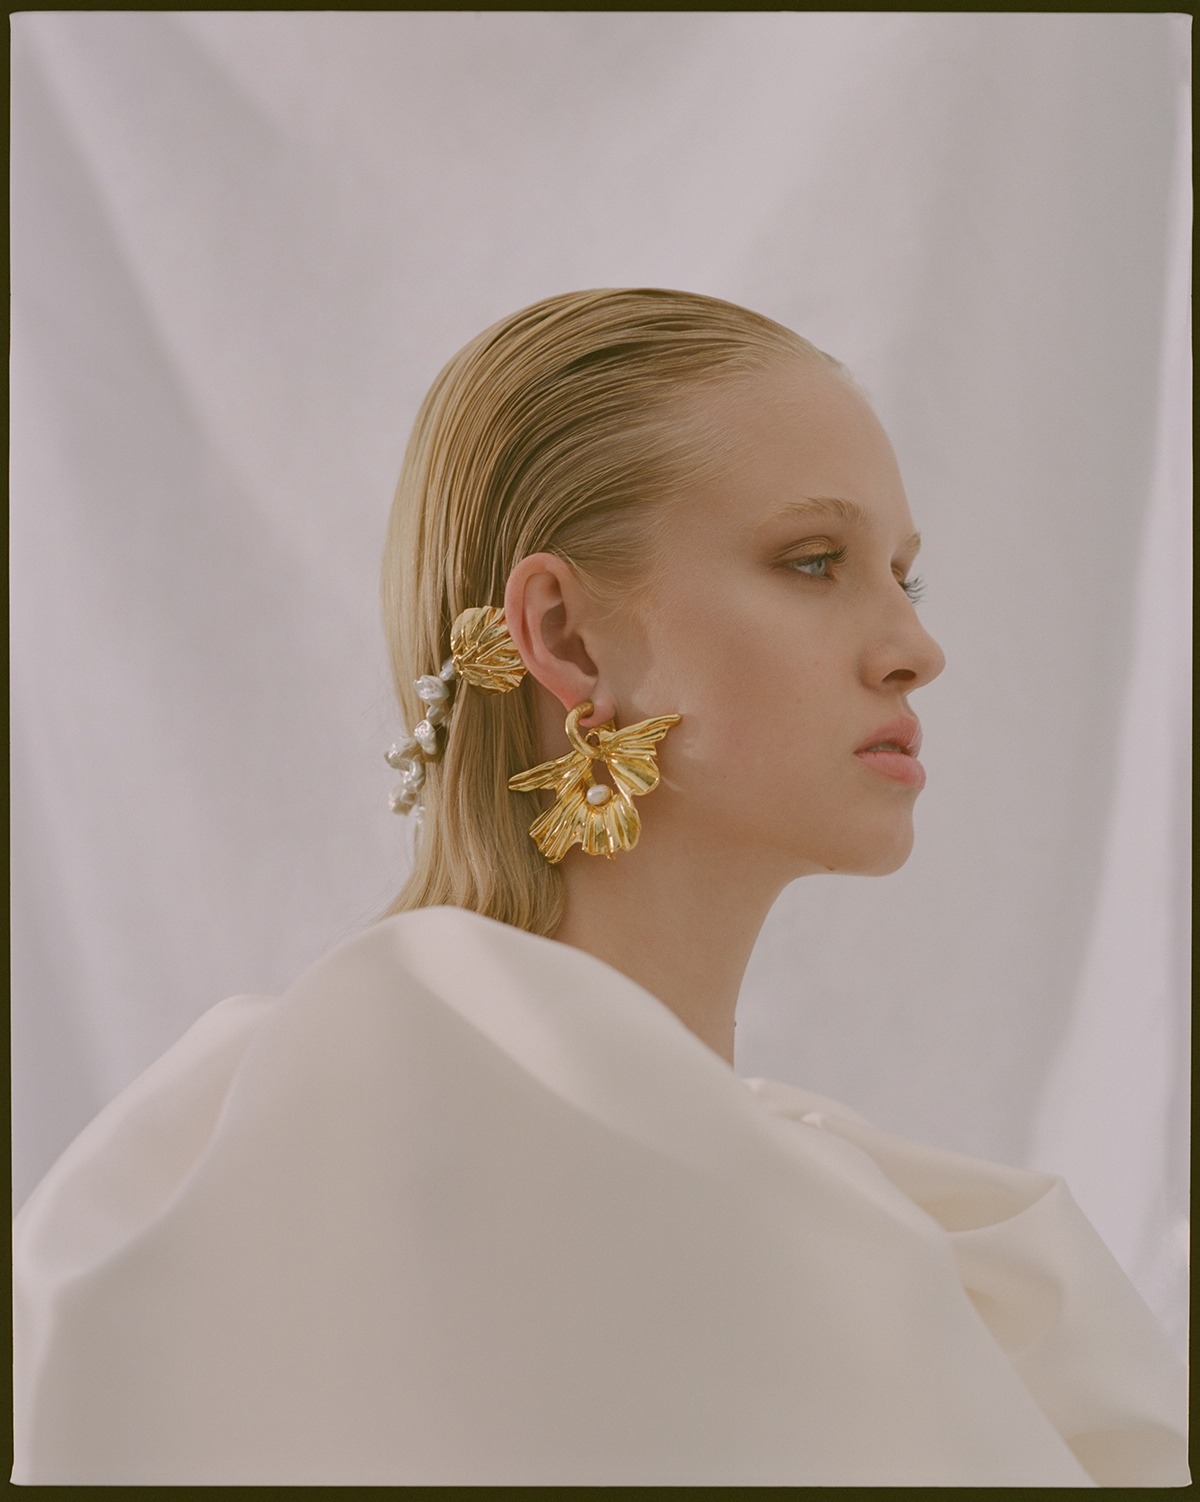 Niamh Dwyer wears Mariam Seddiq and Balyck Jewellery in ROMANTIQUES for Base Cast shot on medium format film by Aaron VIII